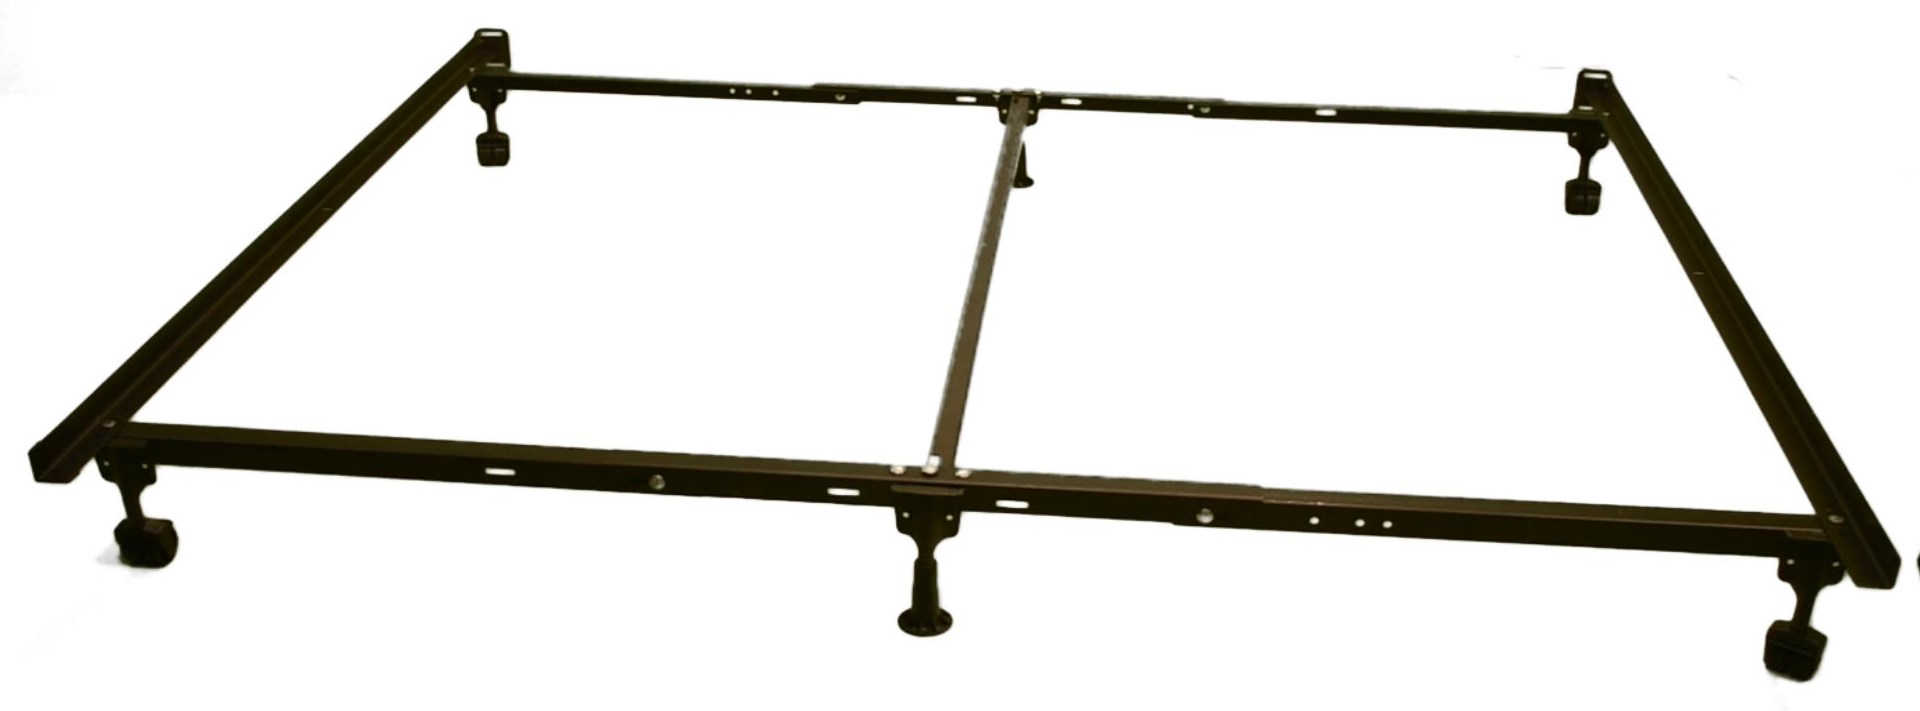 Frames CS522RR Metal Bed Frame-King Size by Albion Industries at Catalog Outlet